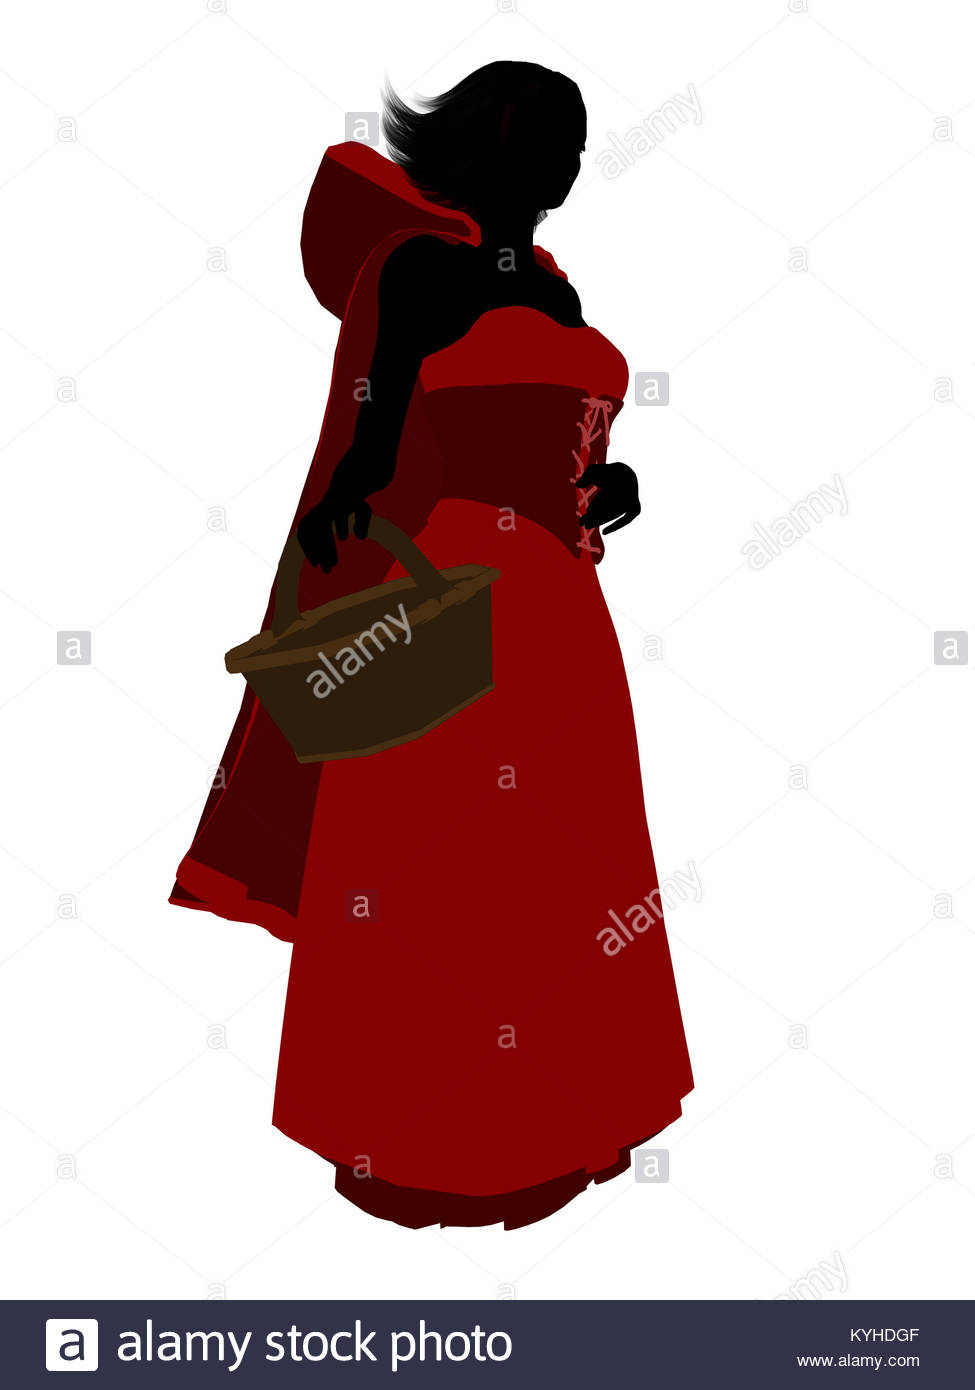 975x1390 Little Red Riding Hood Illustration Silhouette On A White